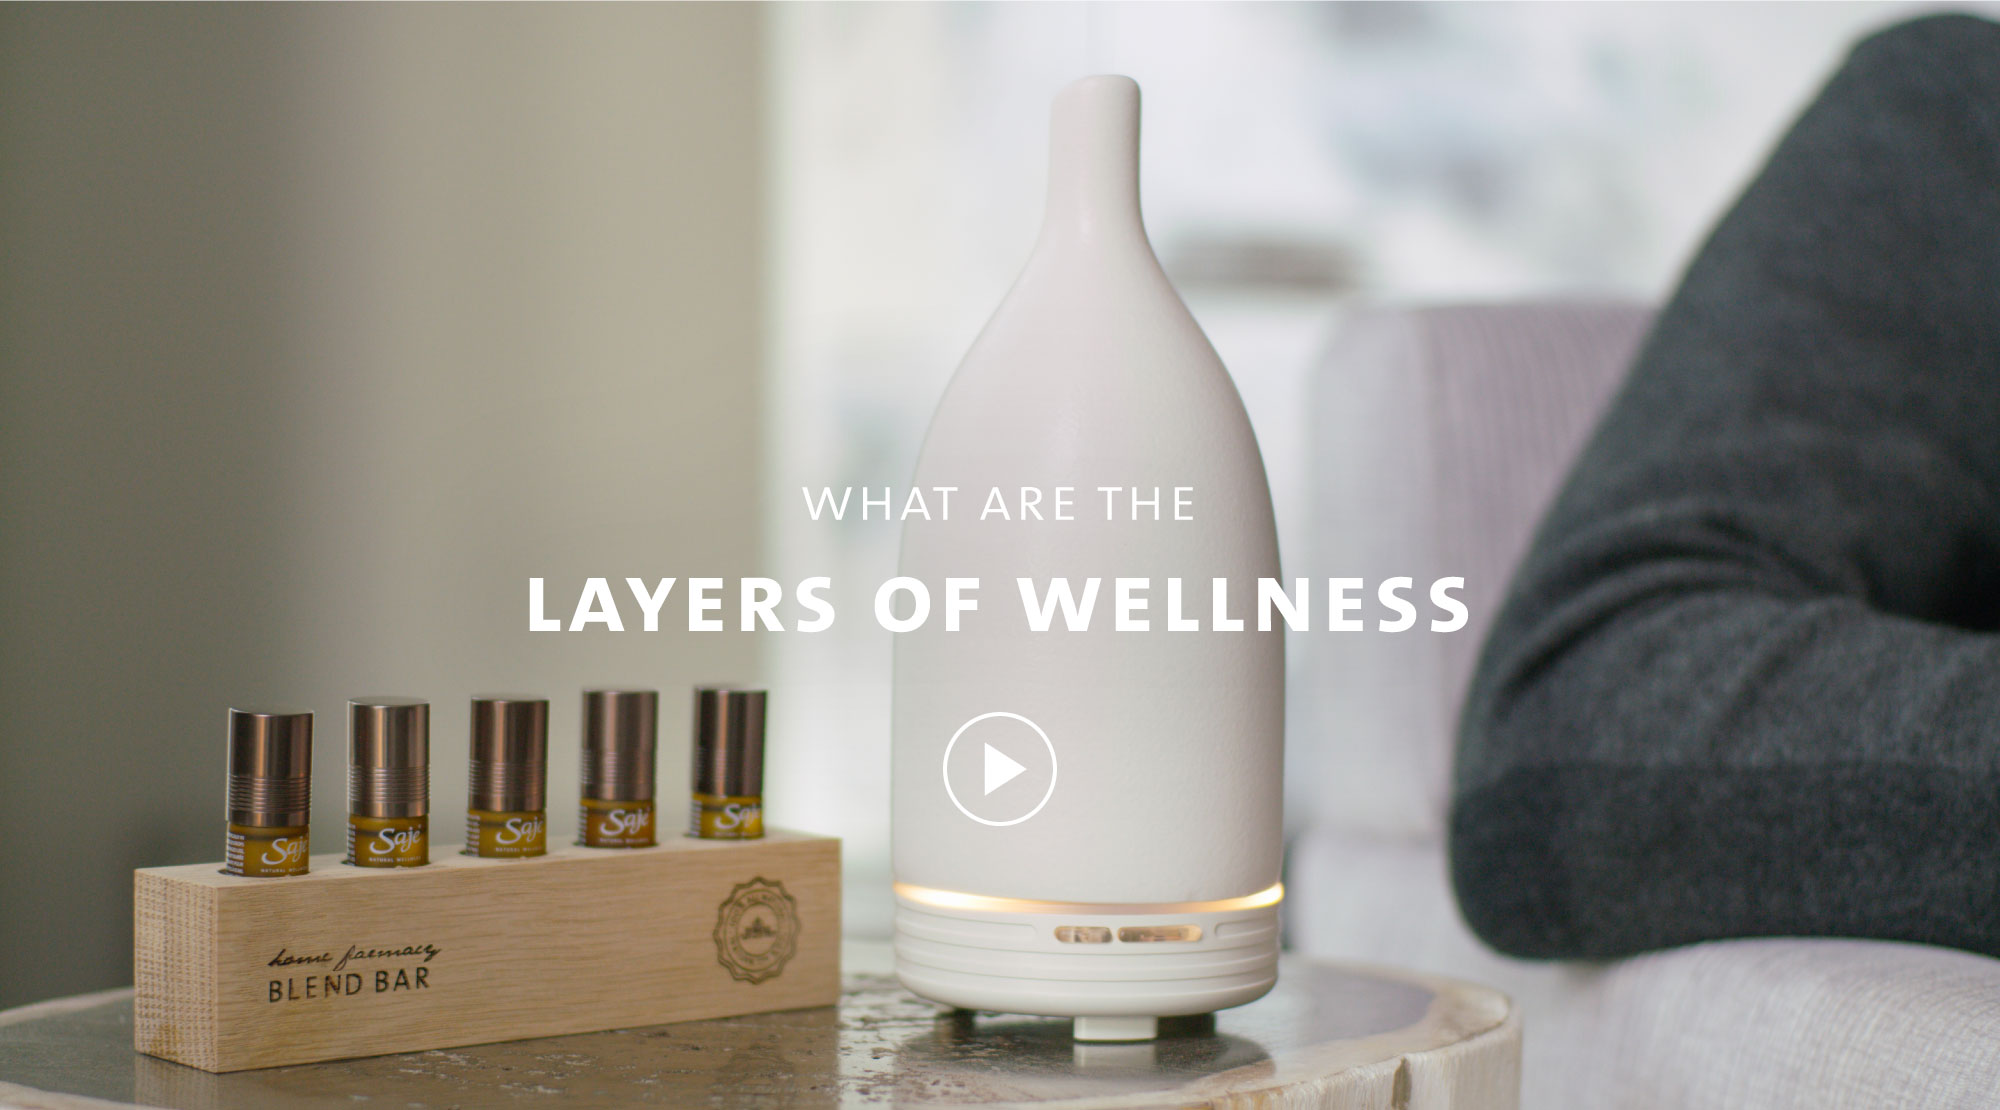 What are the layers of wellness?